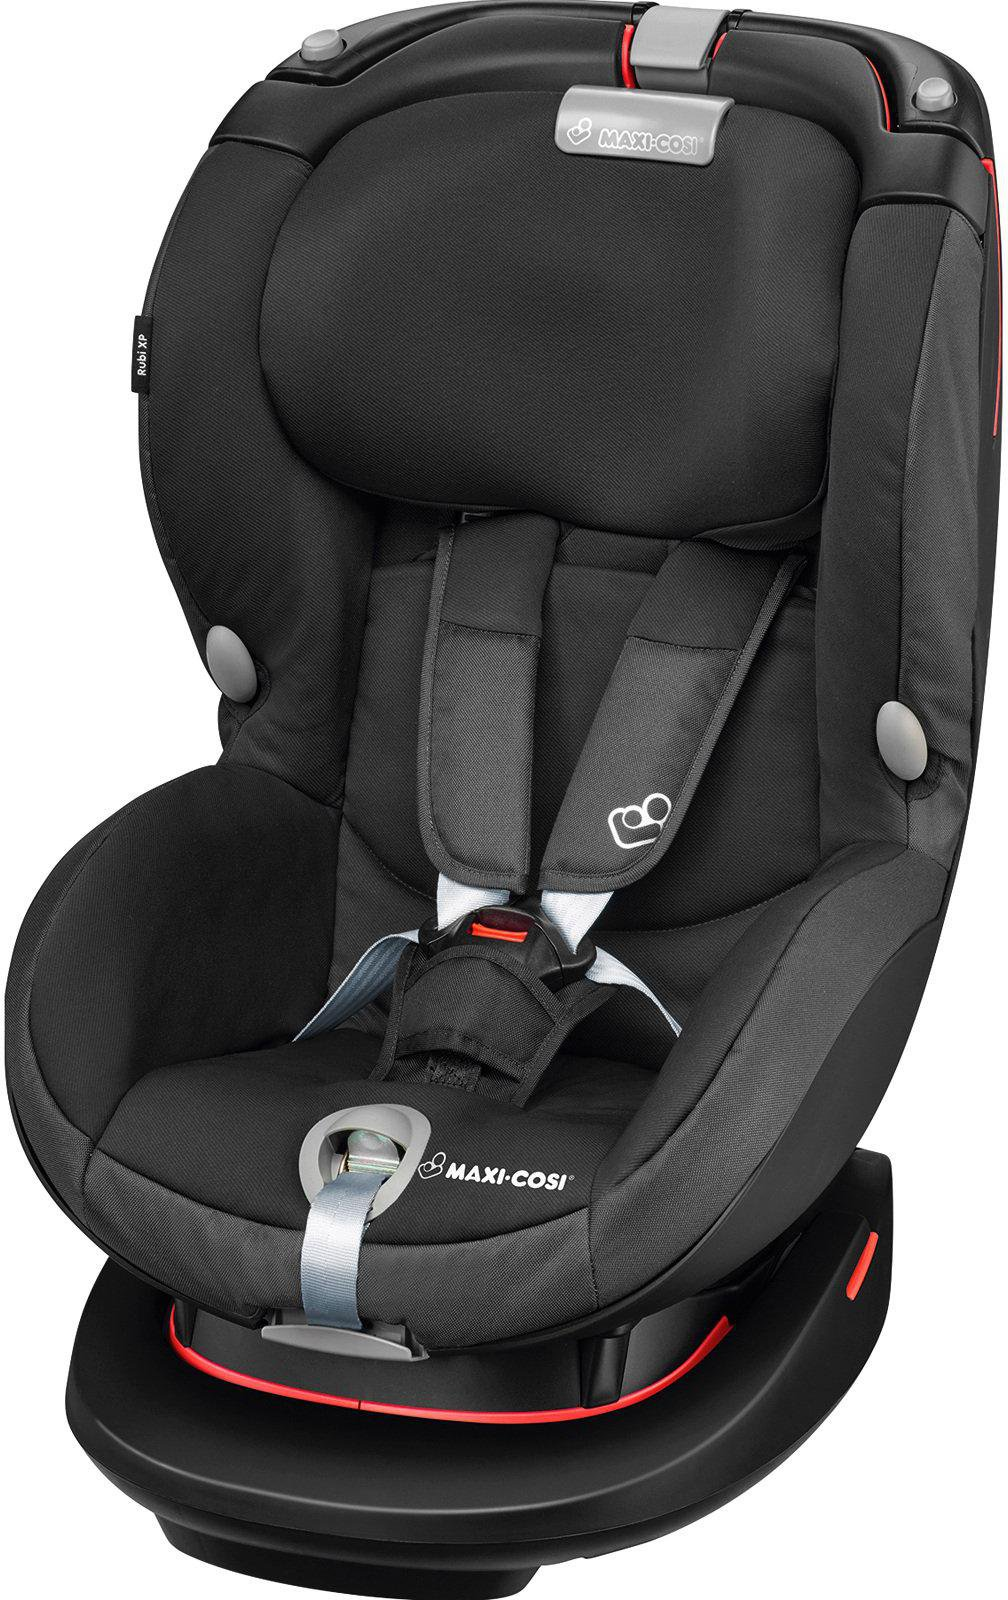 Maxi-cosi Auto-kindersitz Rubi Xp Poppy Red 2018 Maxi Cosi Rubi Xp